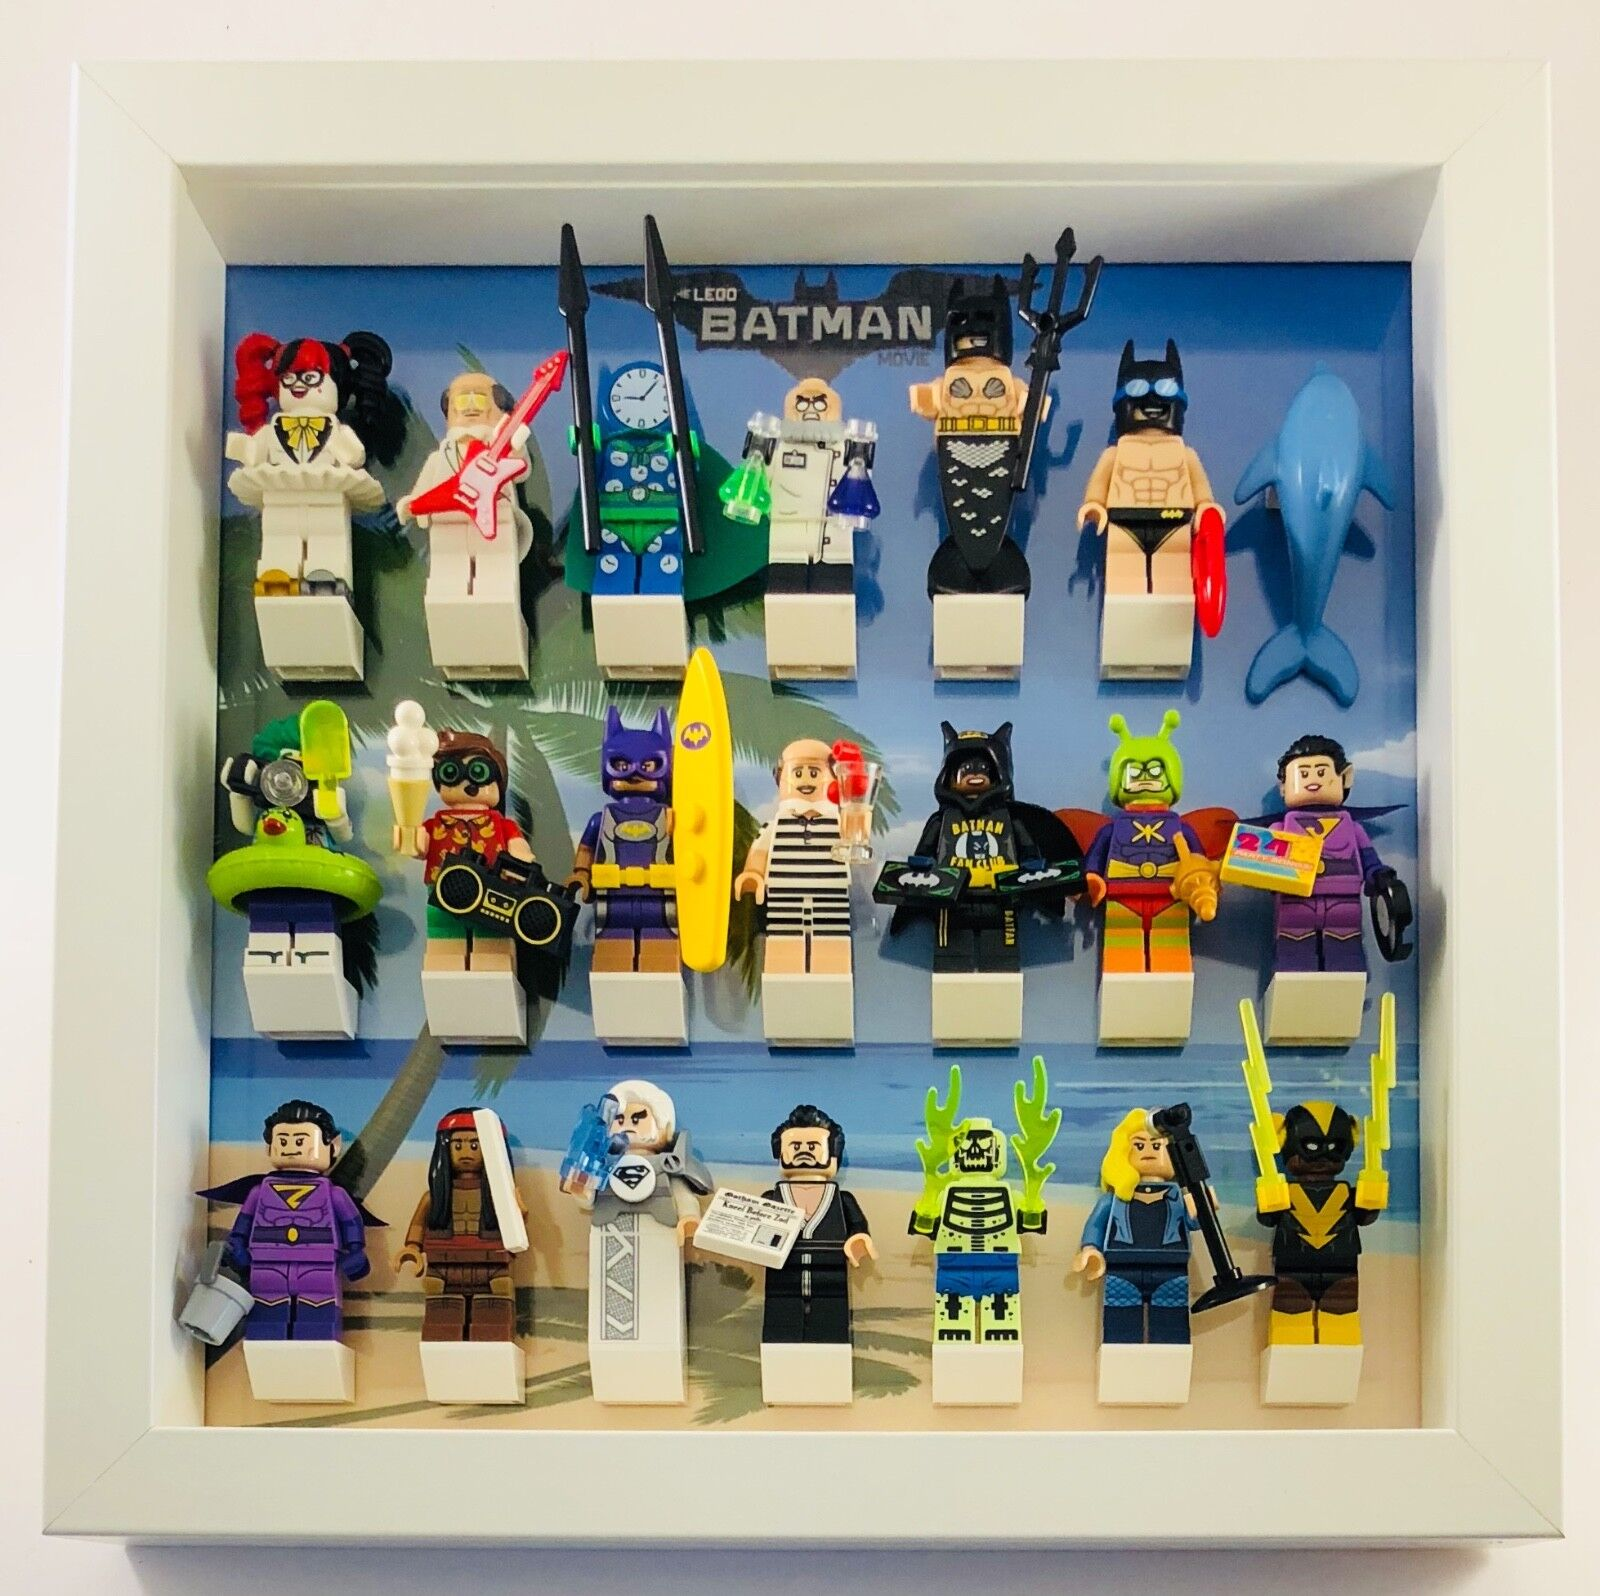 Lego Minifigure Display Case Frame for Lego Simpsons Series 1 Minifigs